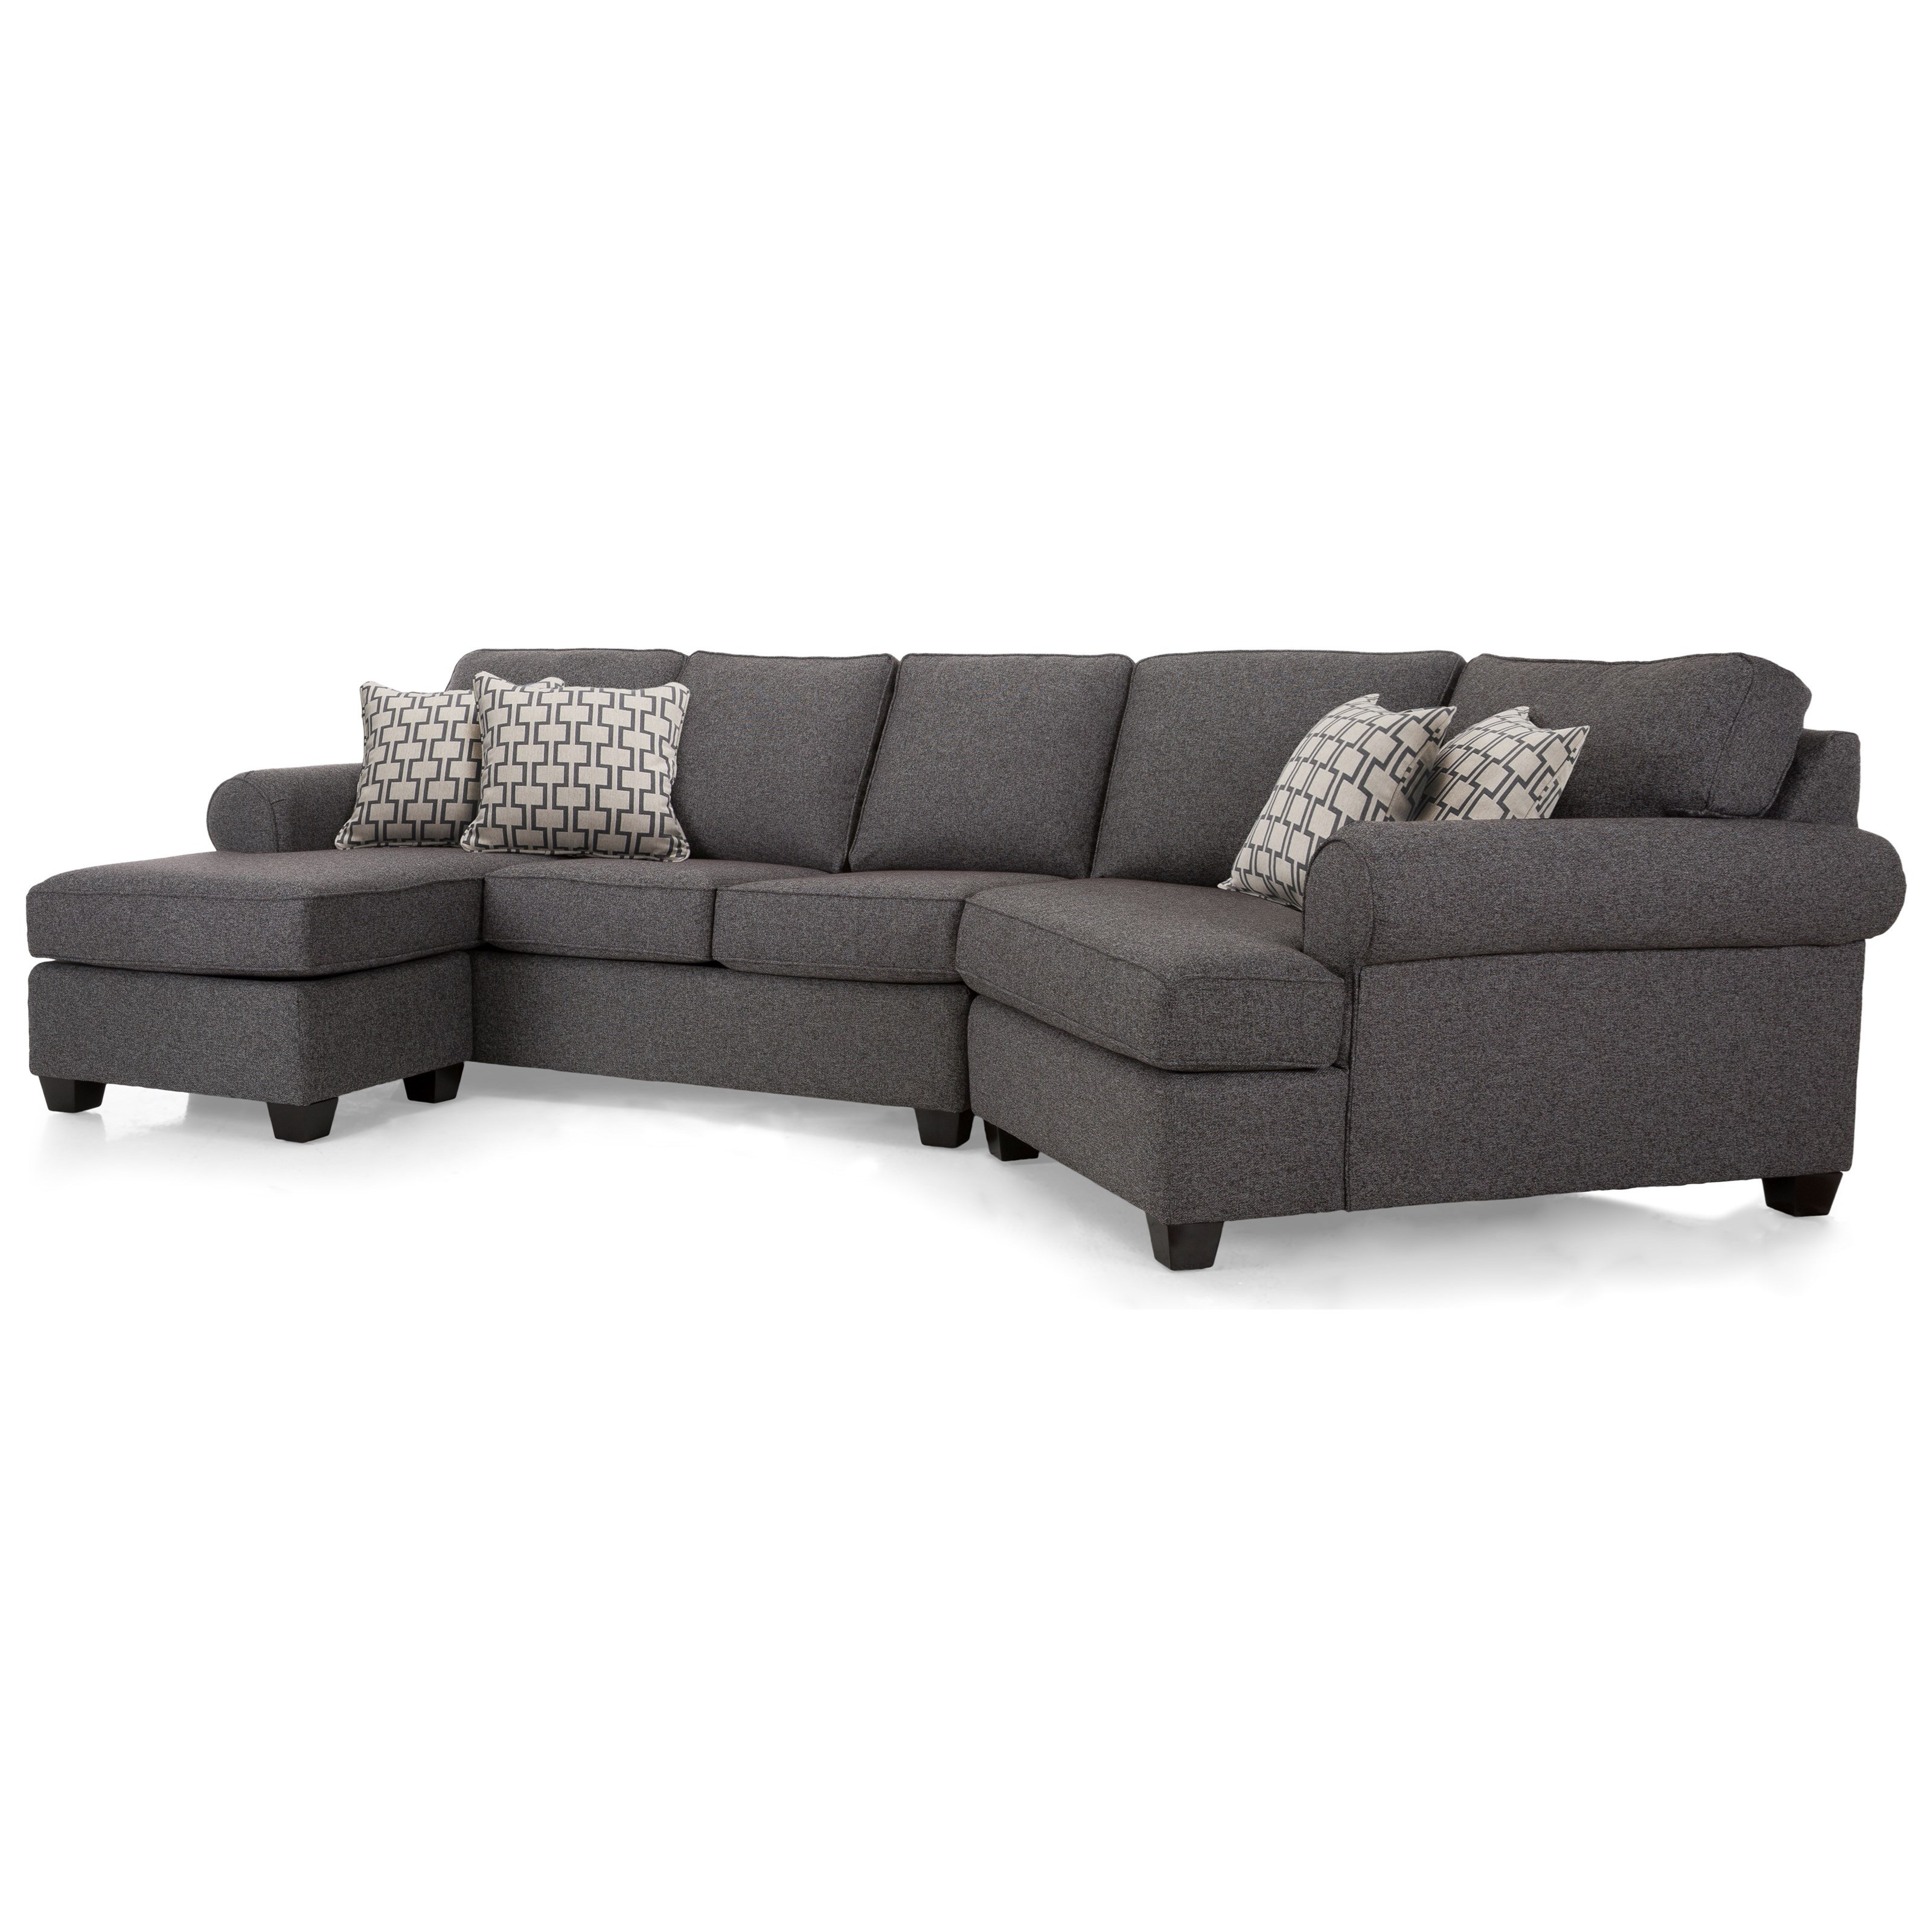 2576 Sectional by Decor-Rest at Stoney Creek Furniture